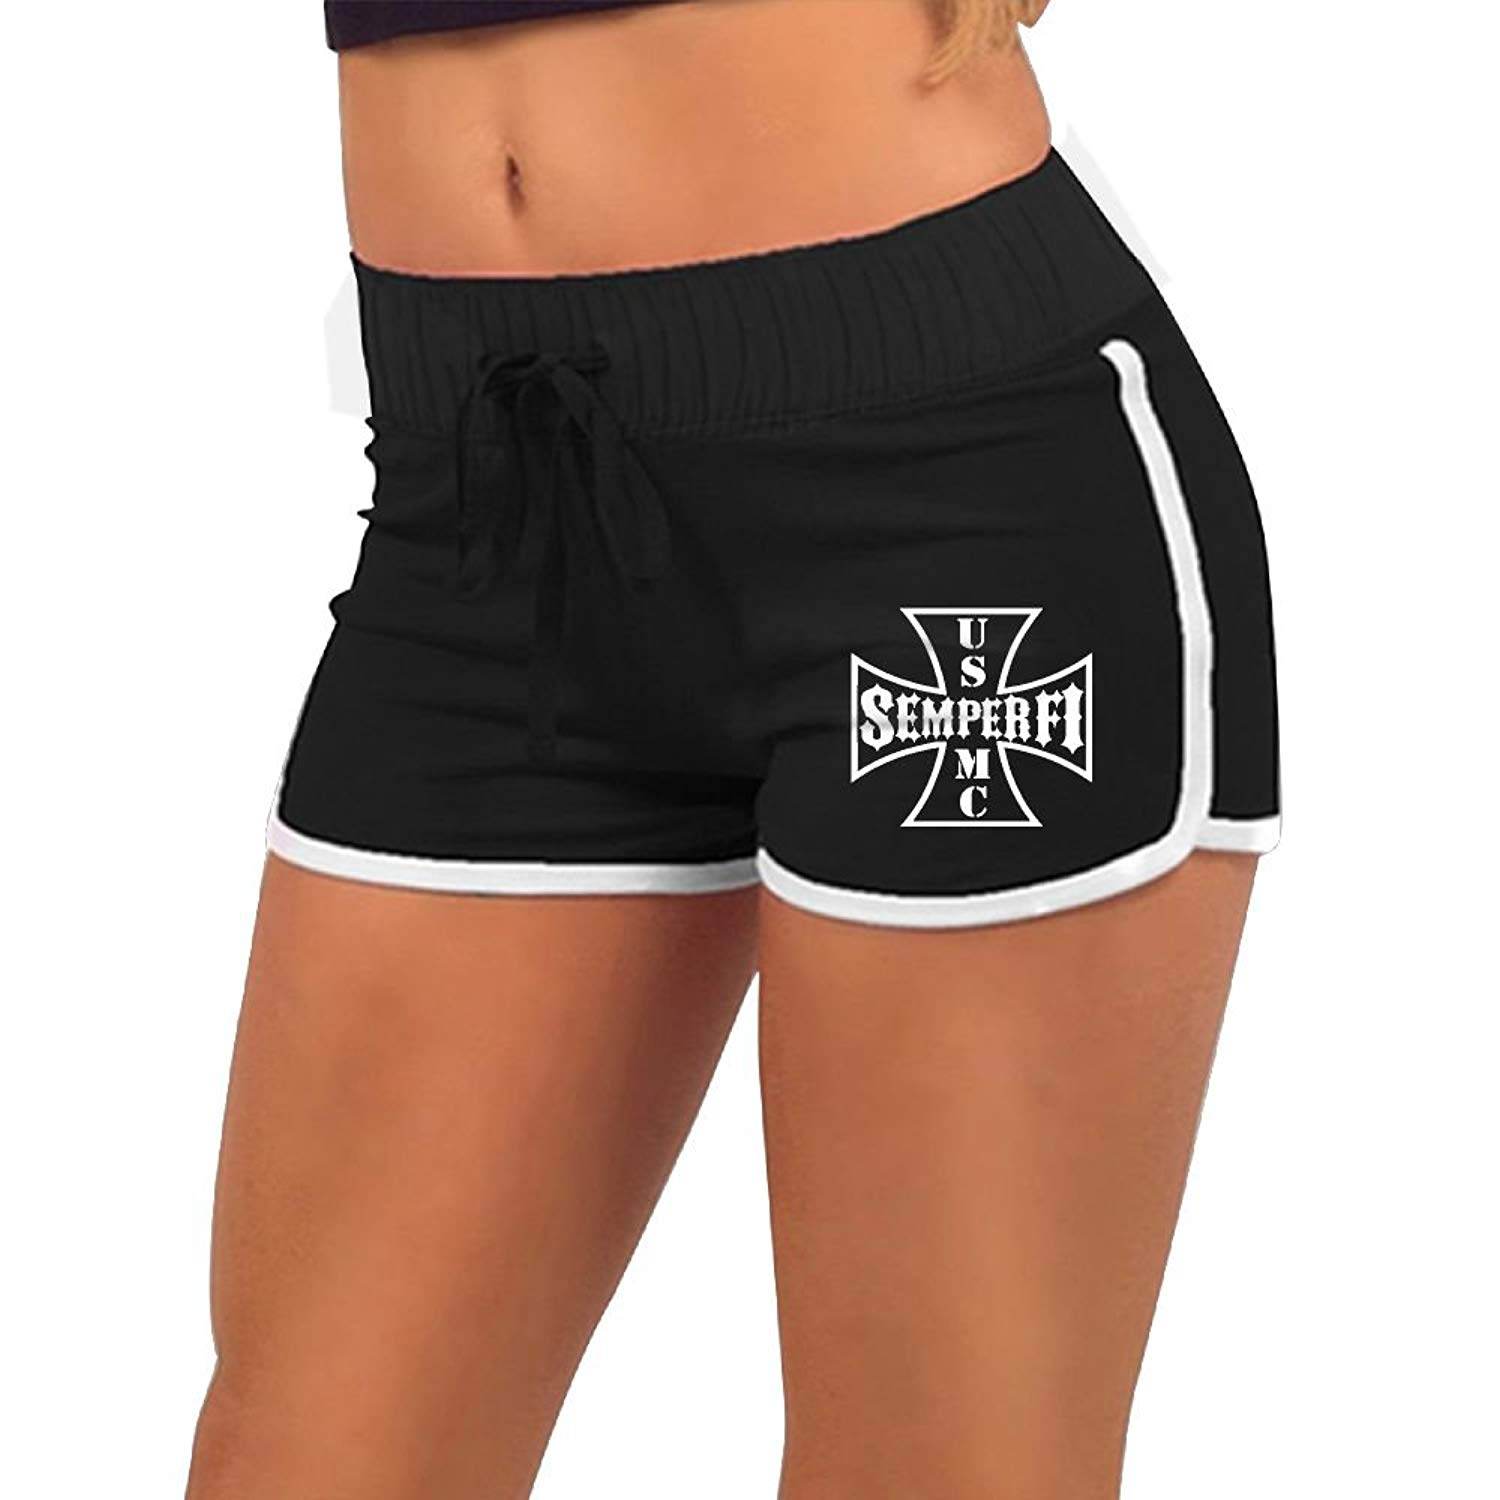 KENYYIOP USMC Women Yoga Shorts,Workout Shorts,Summer Pants,Running Shorts,Drawstring Waist Running Shorts